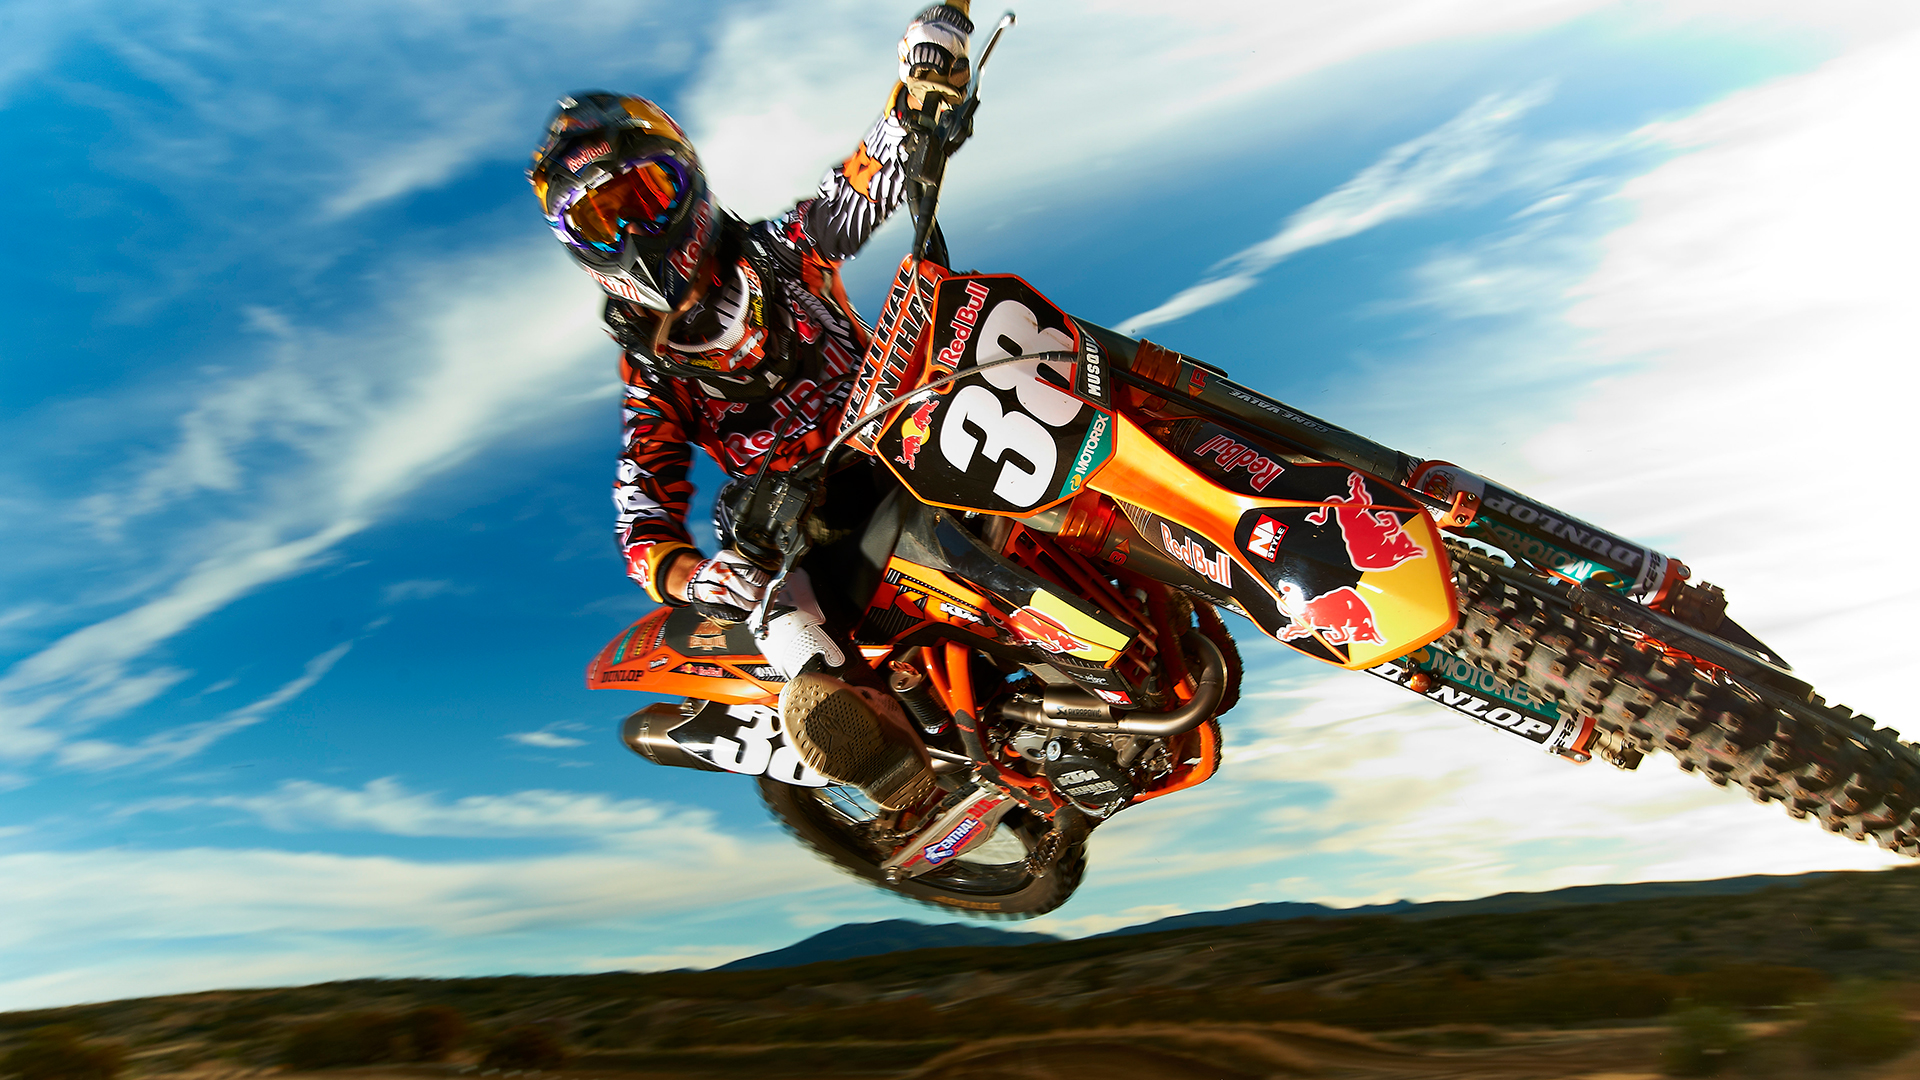 Related Transworld Motocross Wallpaper Freestyle Motocros 1920x1080